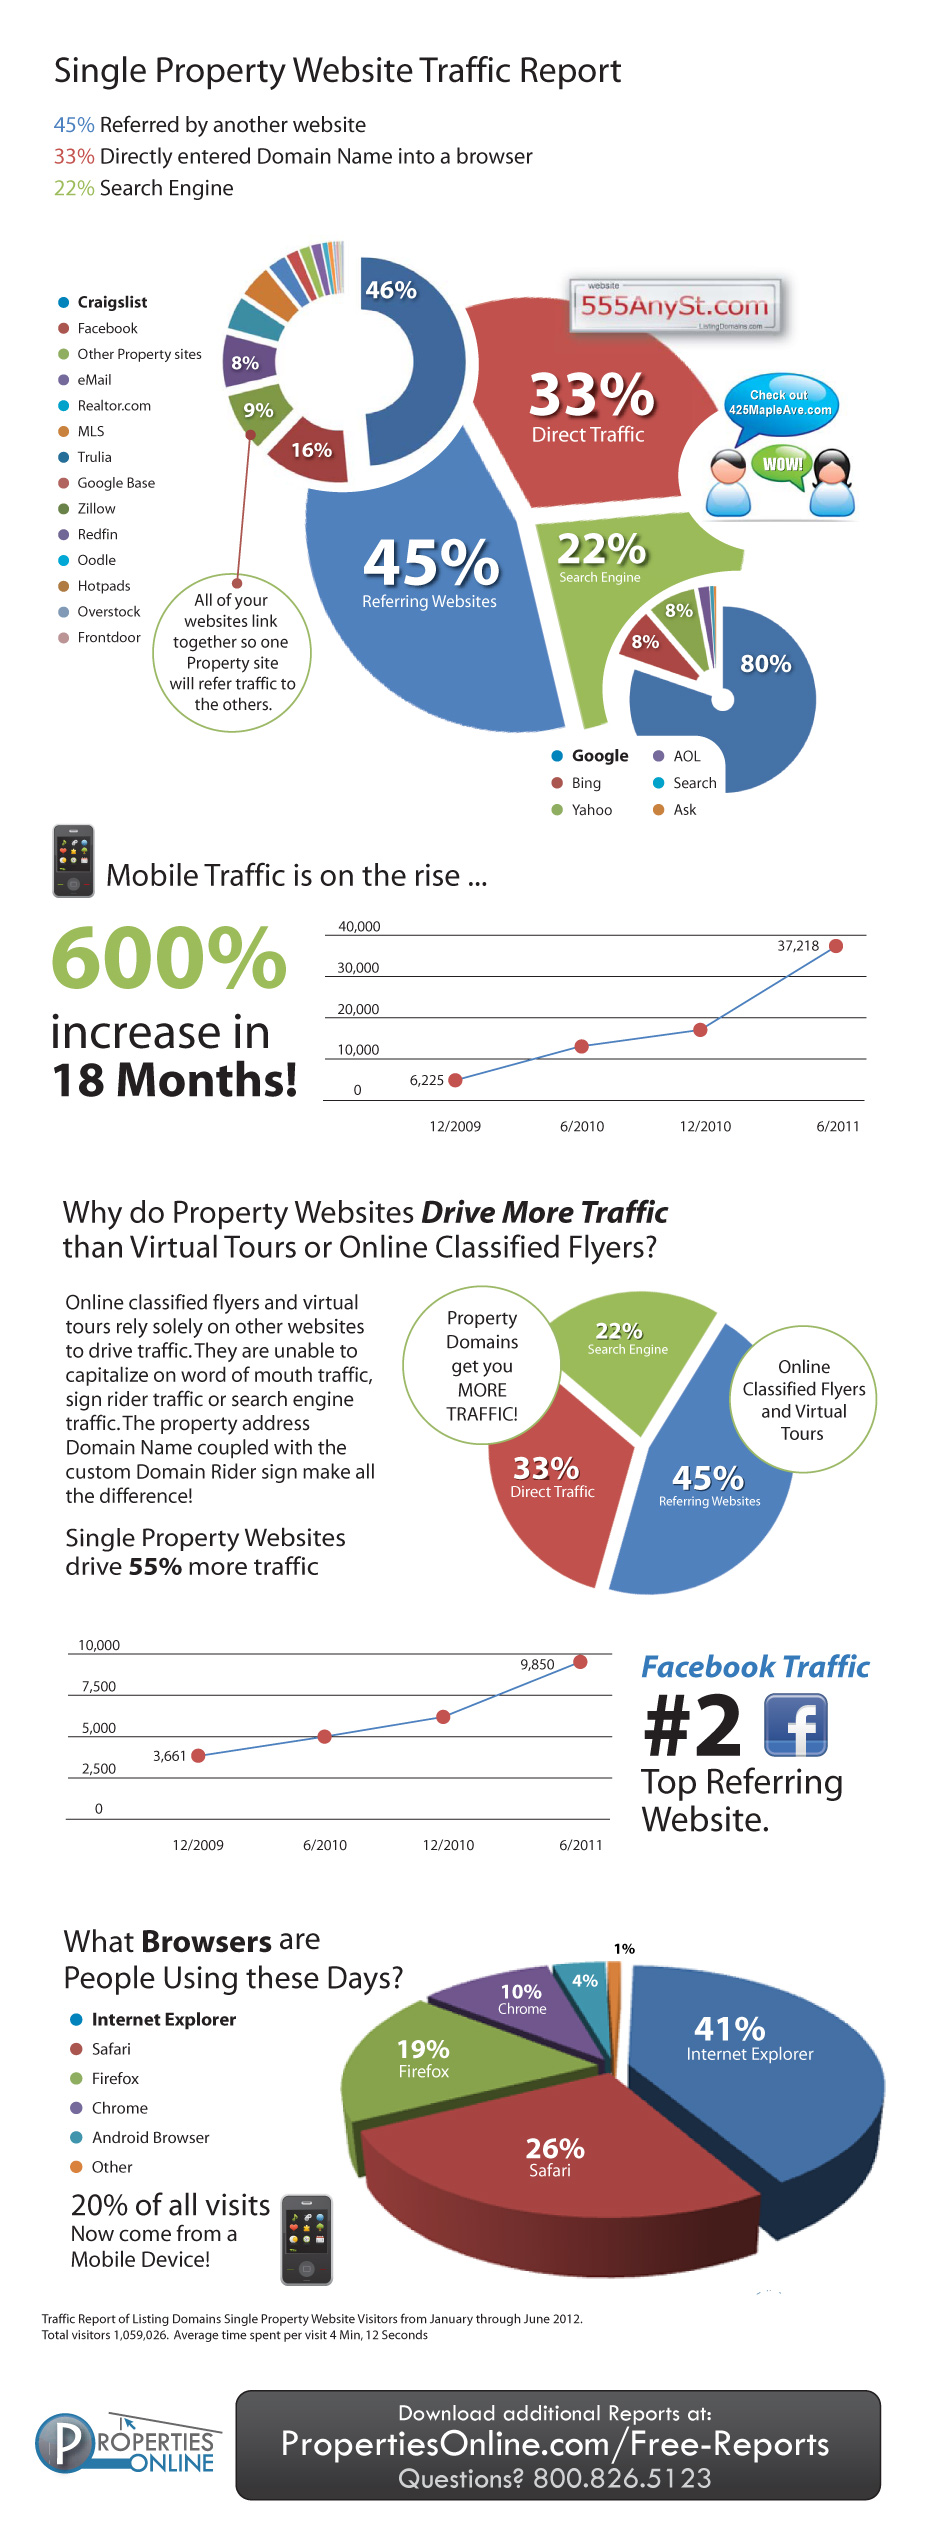 Single property website traffic report